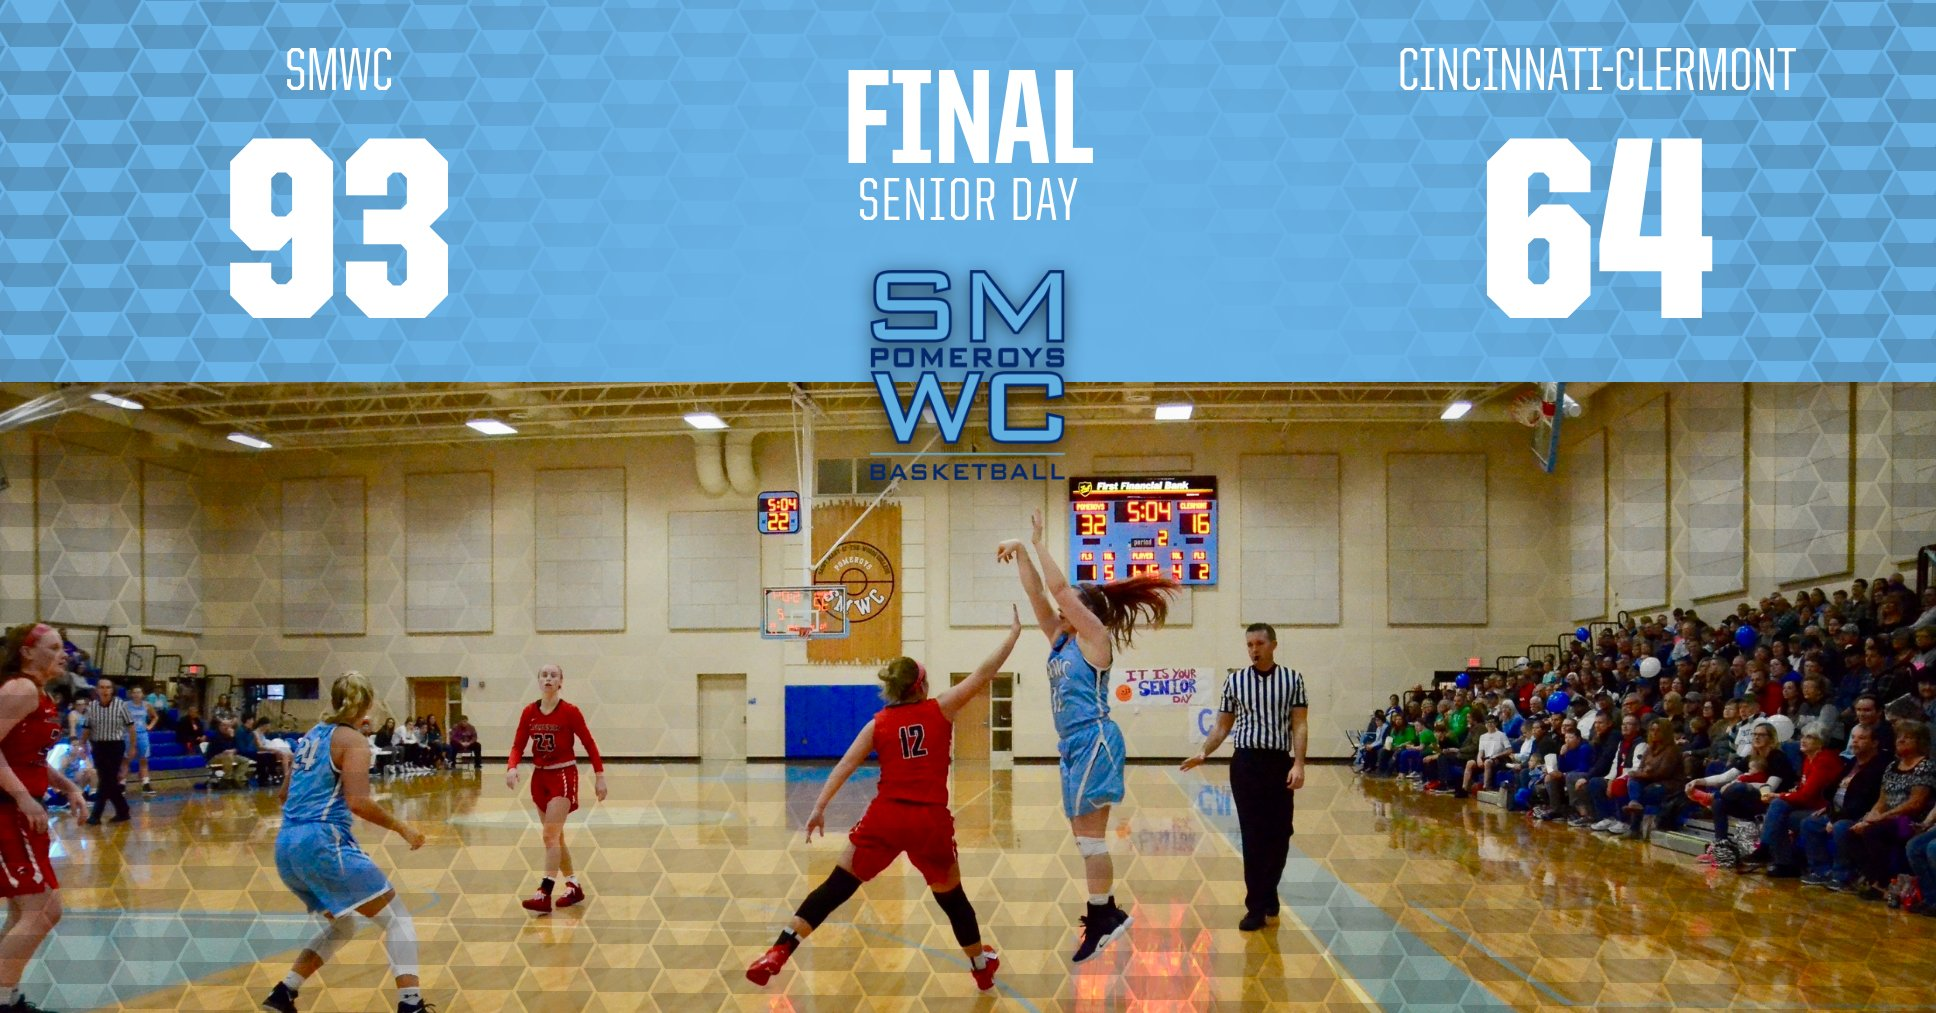 The Pomeroys Are Victorious; Callan Taylor Sent Out In Fashion on Senior Day